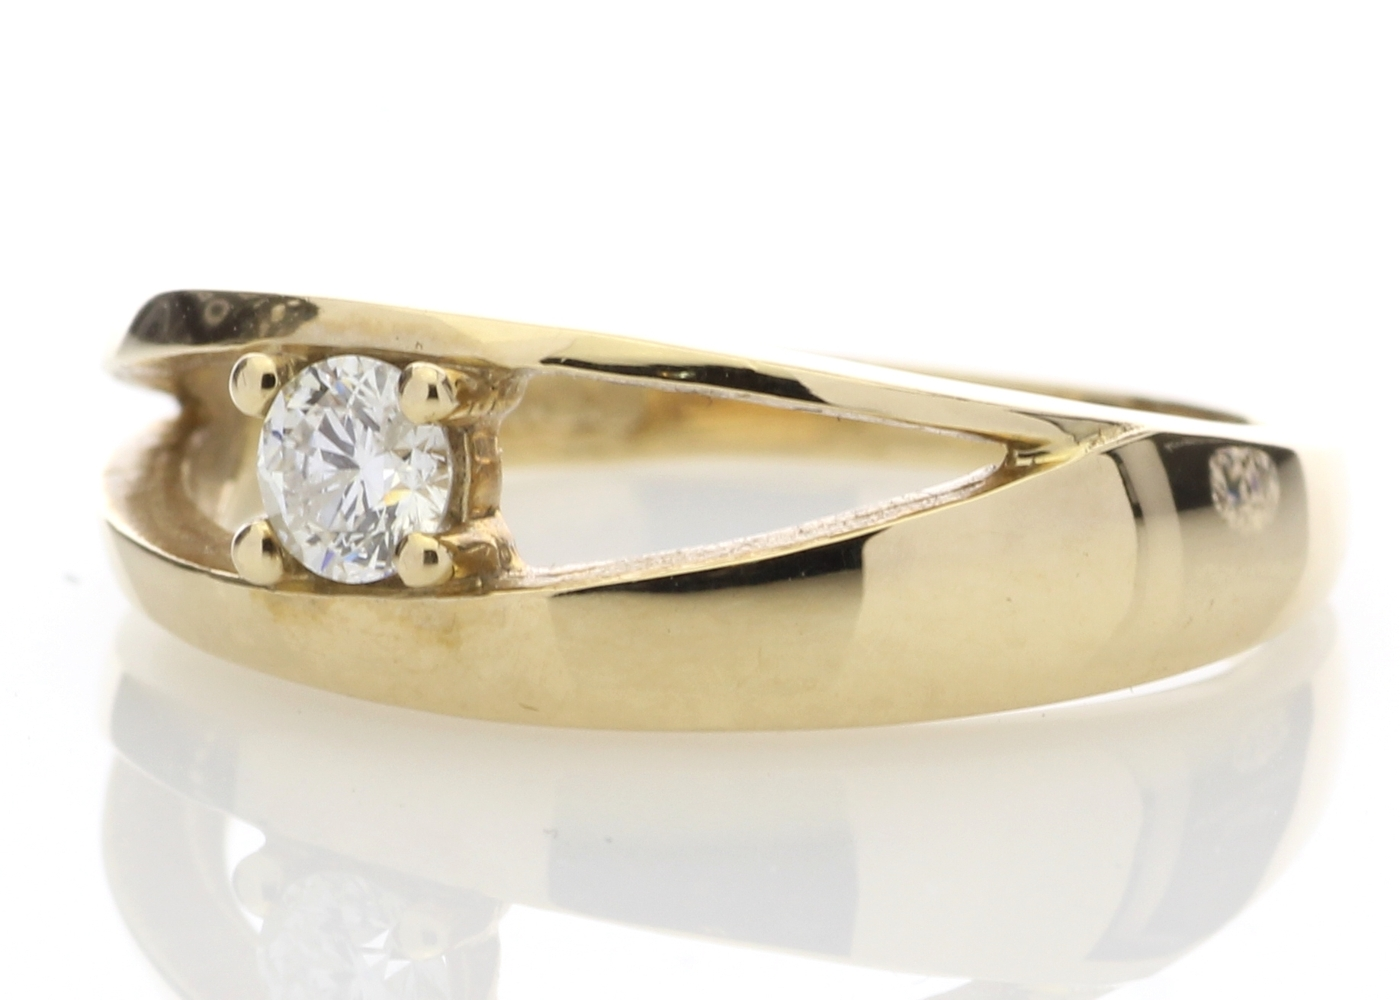 9ct Yellow Gold Claw Set Diamond Ring 0.18 Carats - Image 2 of 4